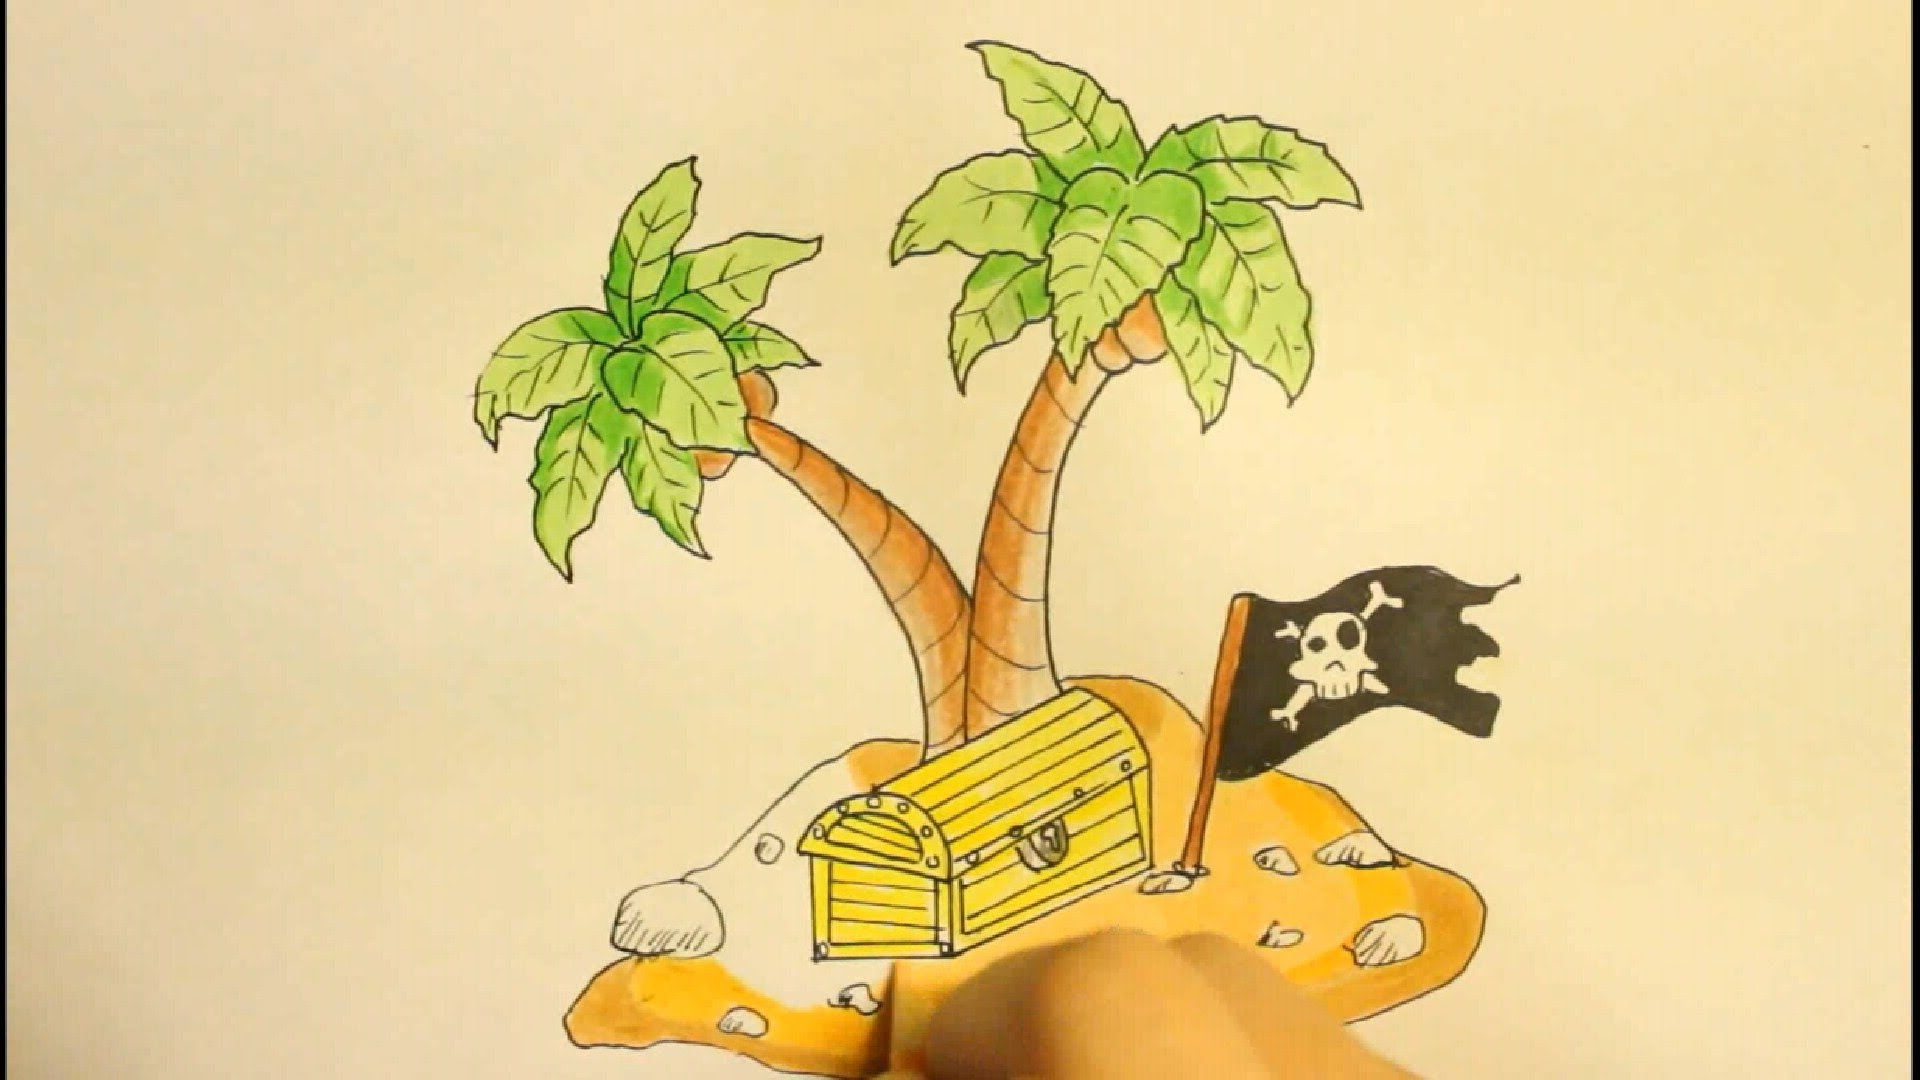 1920x1080 How To Draw A Island With Palm Tree And Treasure Box Easy Step By